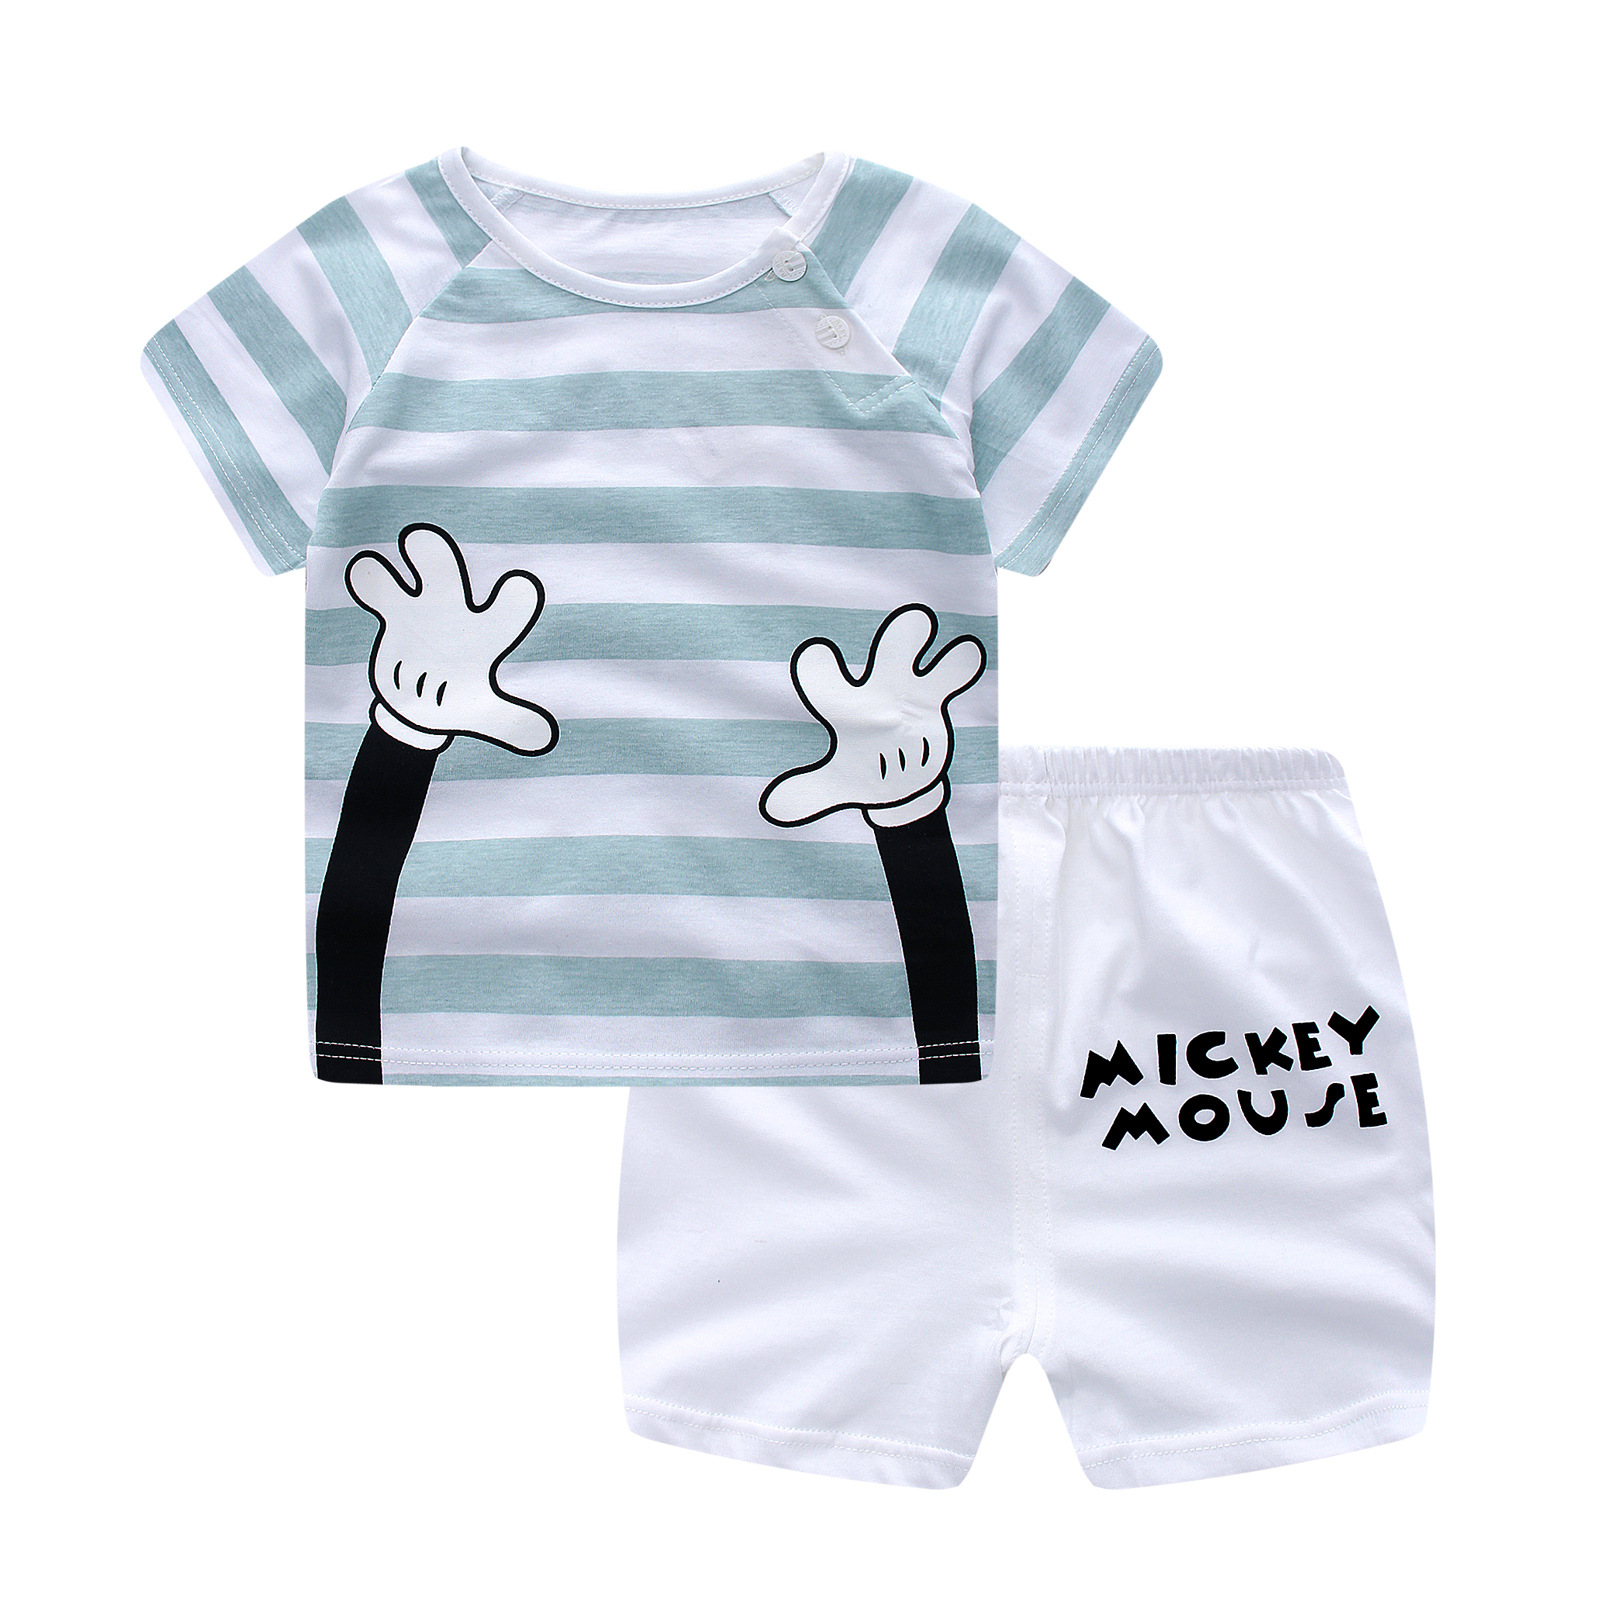 2pcs set Baby Boy Clothes Summer 2018 cotton Short sleeve Newborn Baby Boys Clothes Set Cartoon Baby Clothing Suit (Shirt+Pants) 2pcs set baby clothes set boy